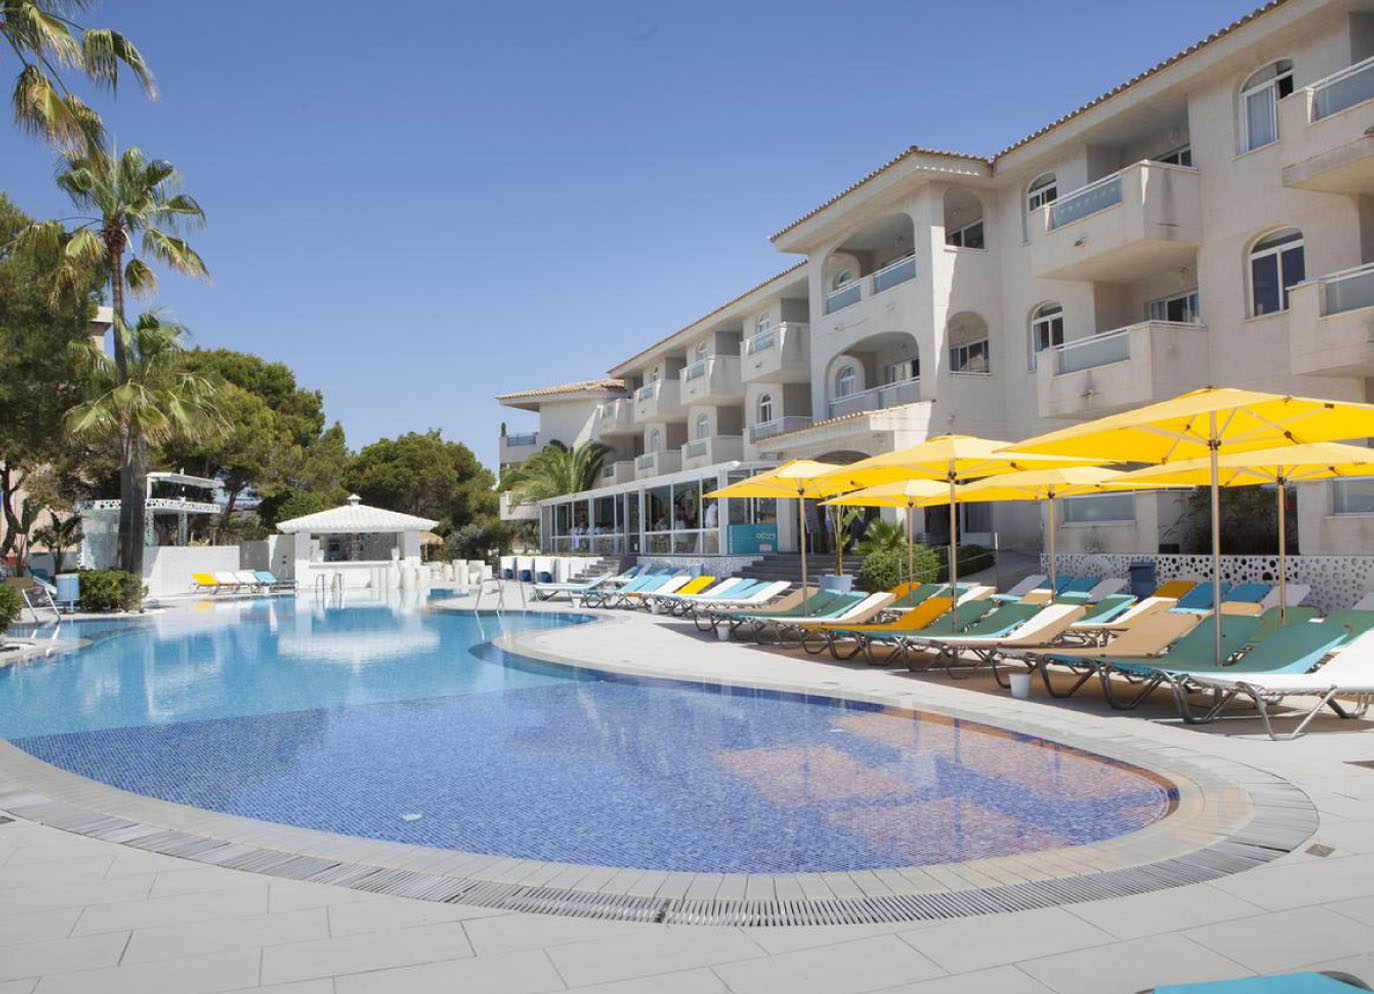 Magaluf Sotavento Hotel